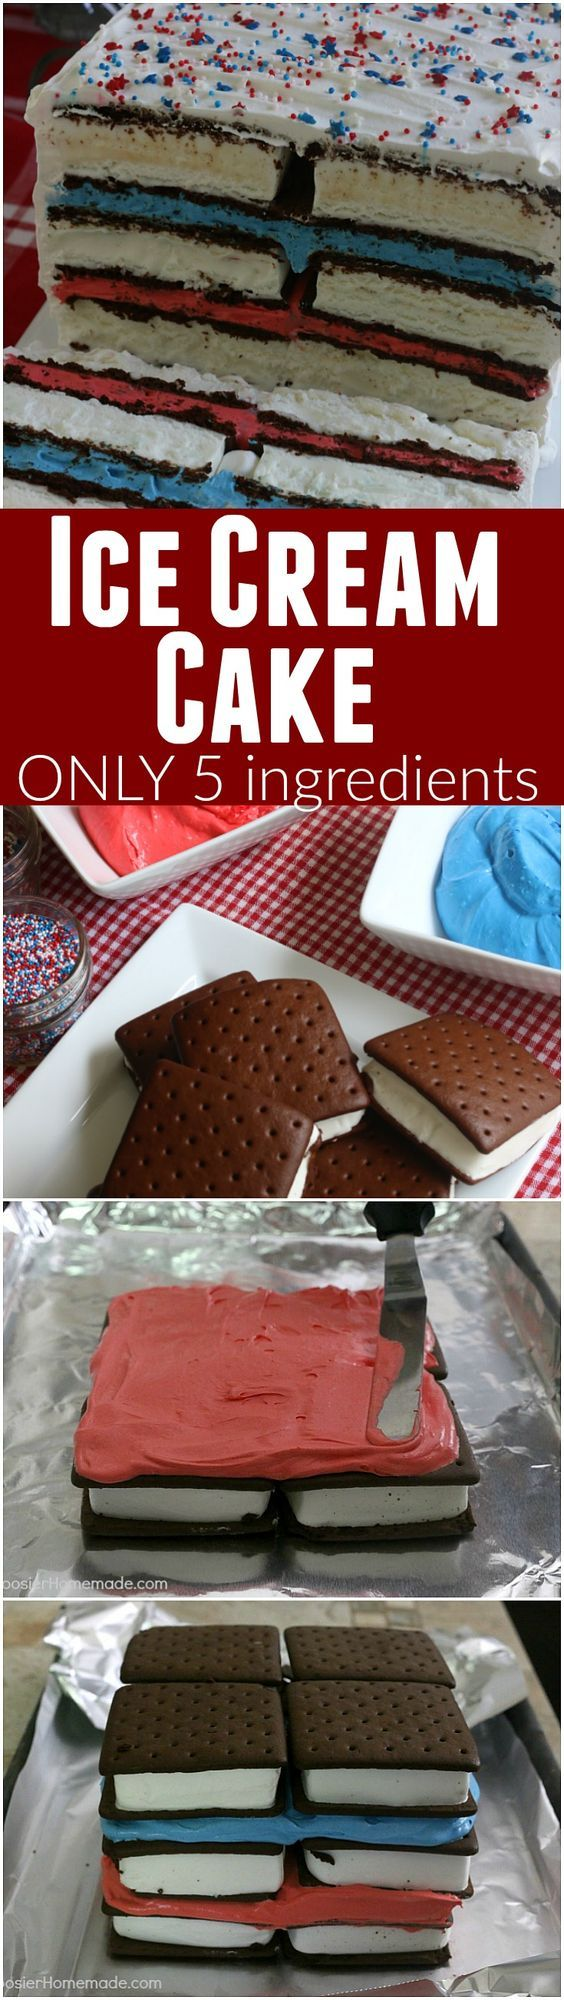 Ice Cream Sandwiches Cake -- this fun red, white and blue ice cream sandwiches cake is super easy and really fun for your 4th of July Celebrations! Just 5 simple ingredients and you have a show-stopping dessert!